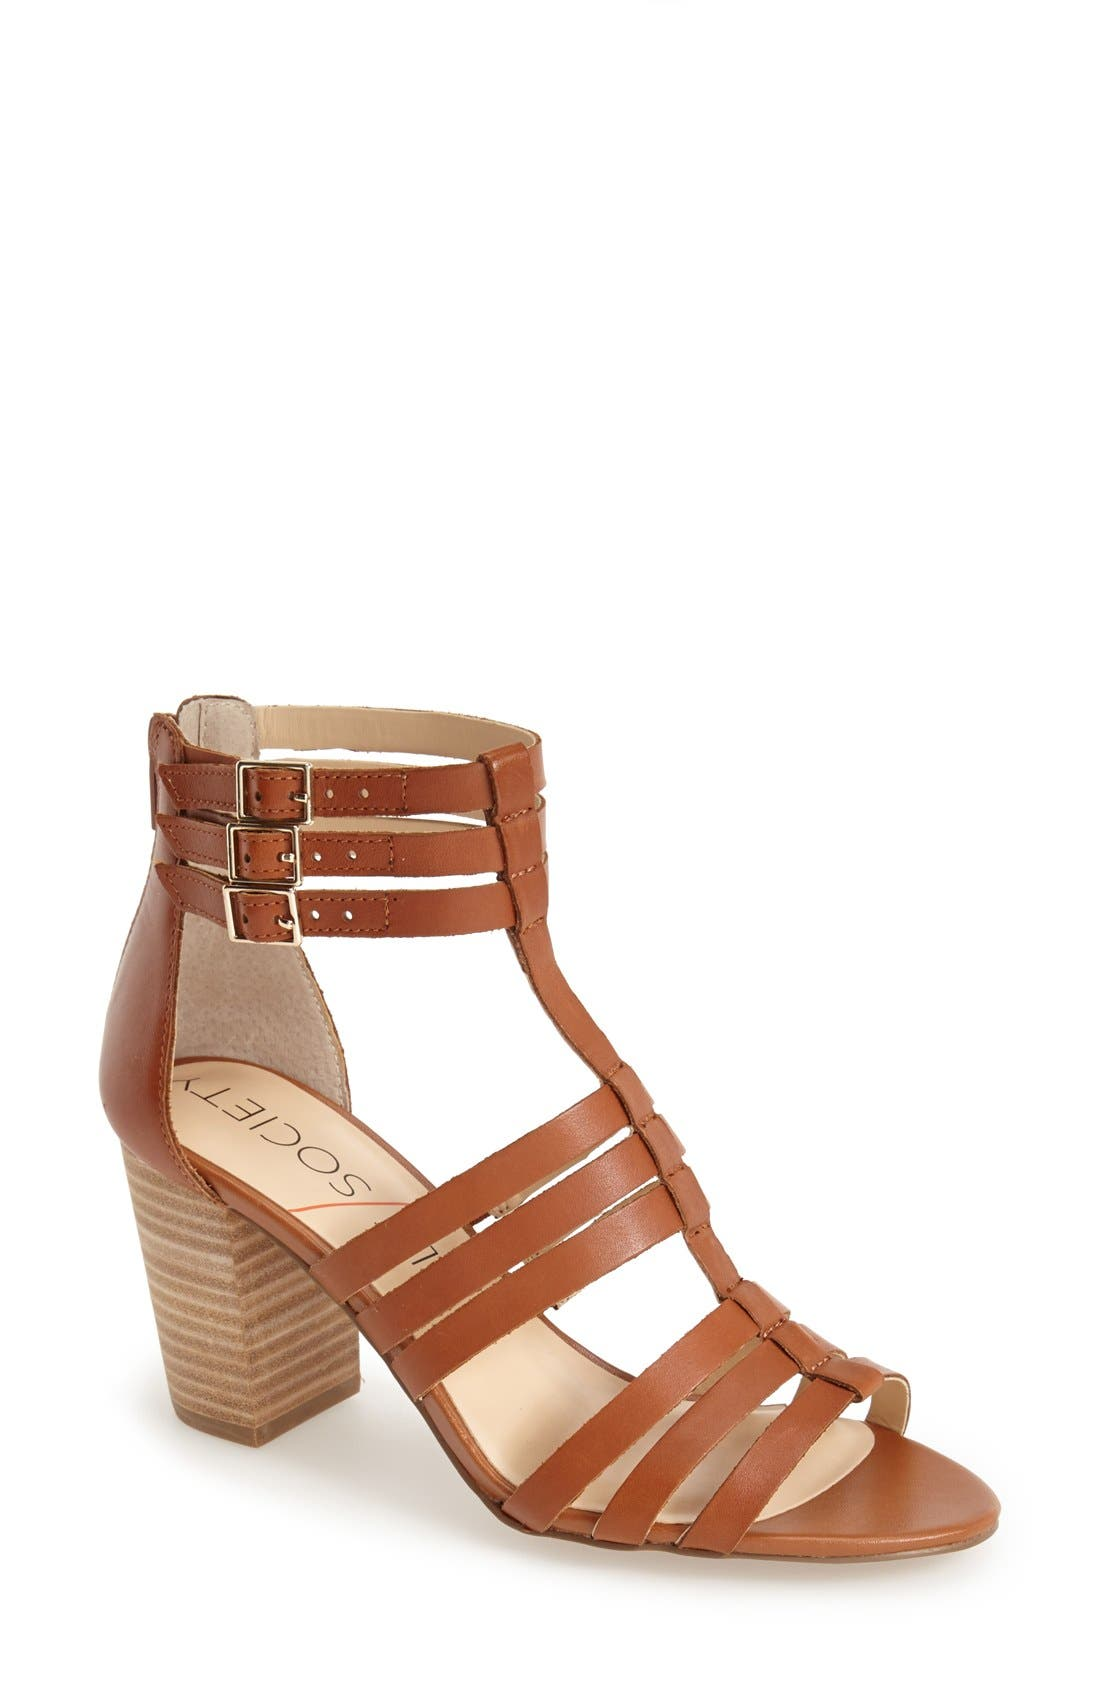 Main Image - Sole Society 'Elise' Gladiator Sandal (Women)